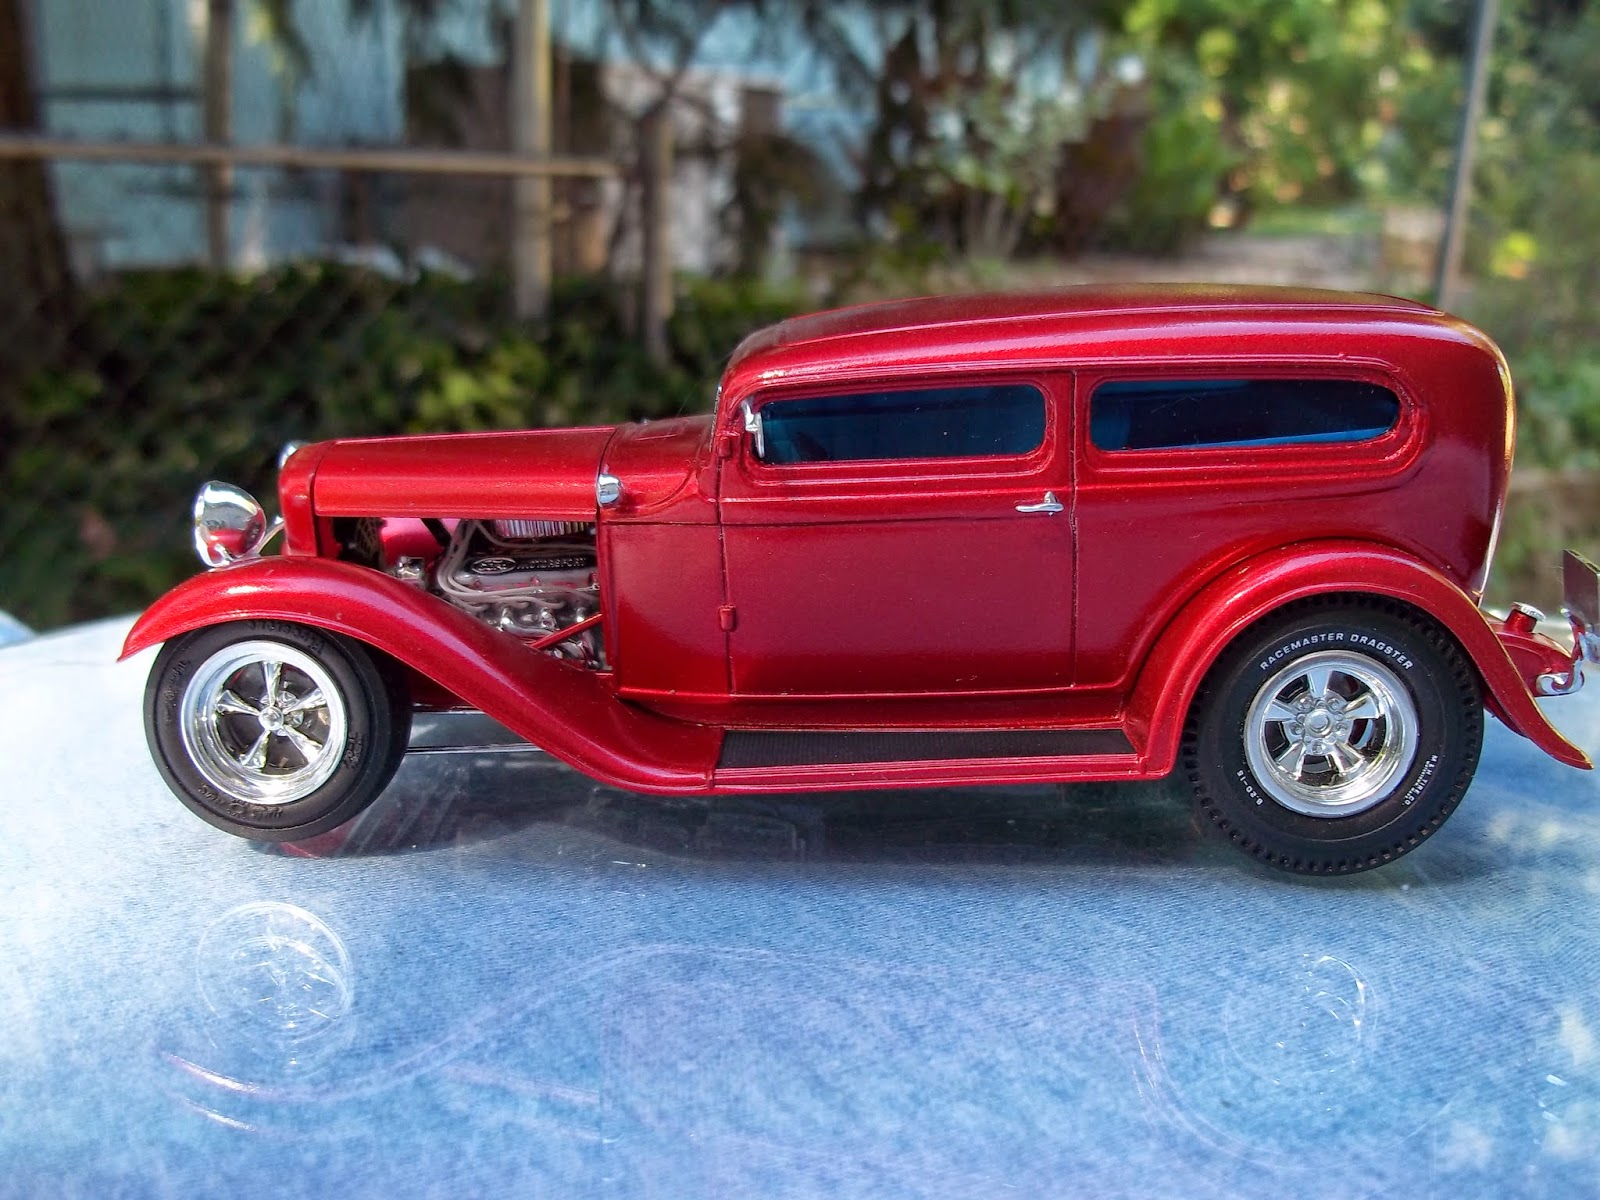 living plastic: Revell 32 Ford Custom chop build up